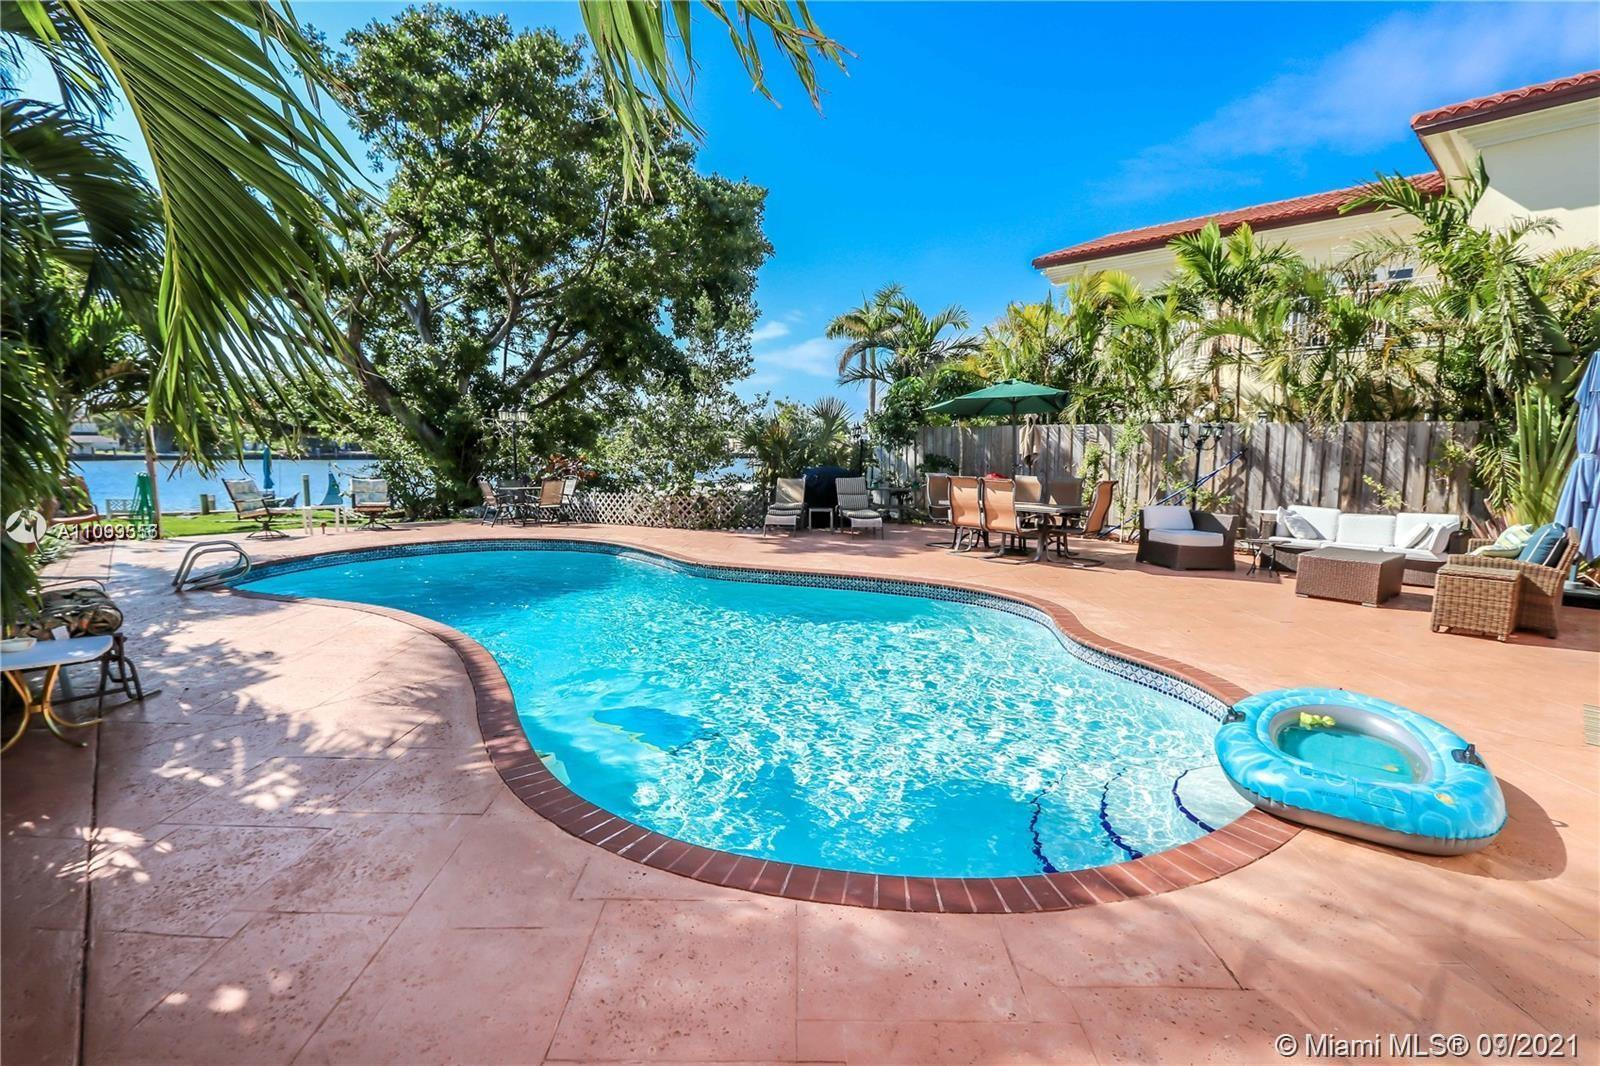 GREAT LOCATION! BEAUTIFUL HOME IN HOLLYWOOD LAKES NORTHLAKE AREA ON NORTHLAKE WITH OCEAN ACCESS. THI